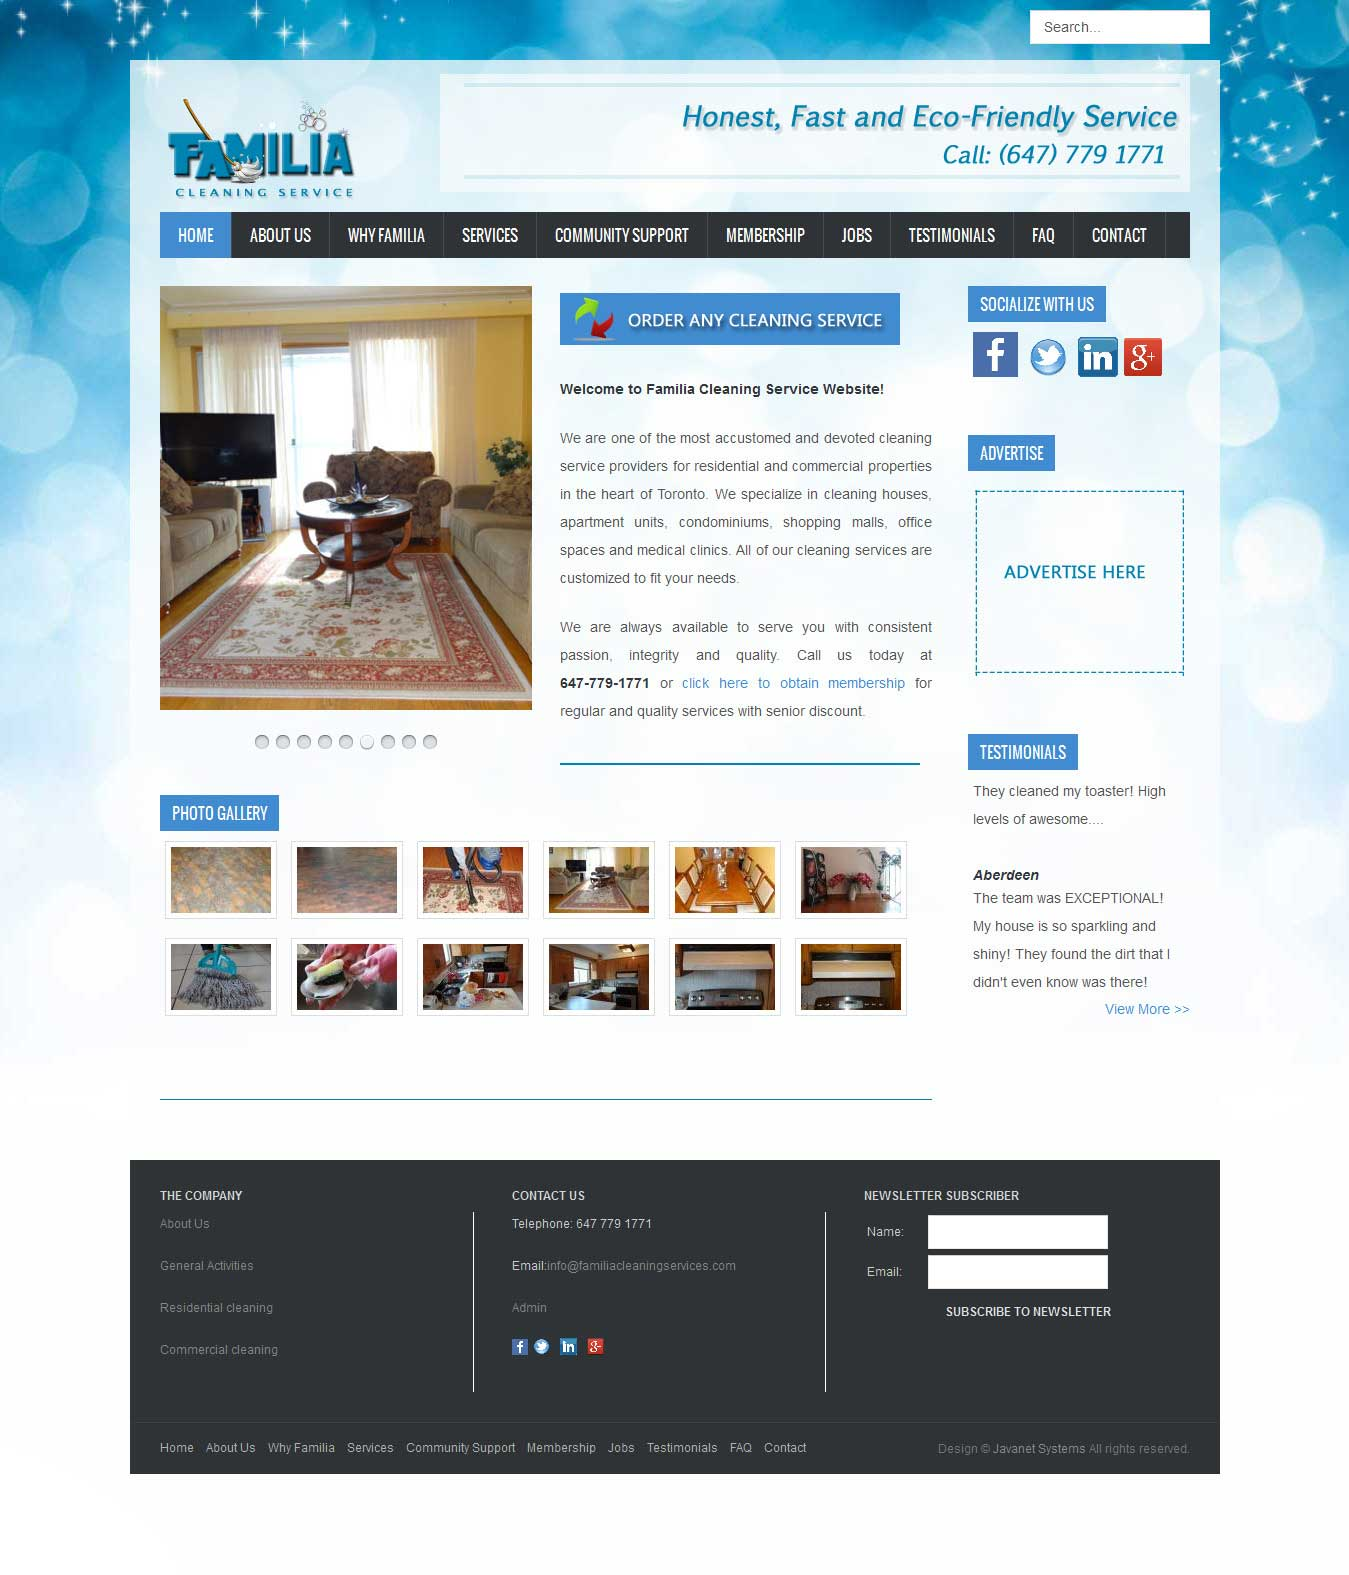 Familia Cleaning Services